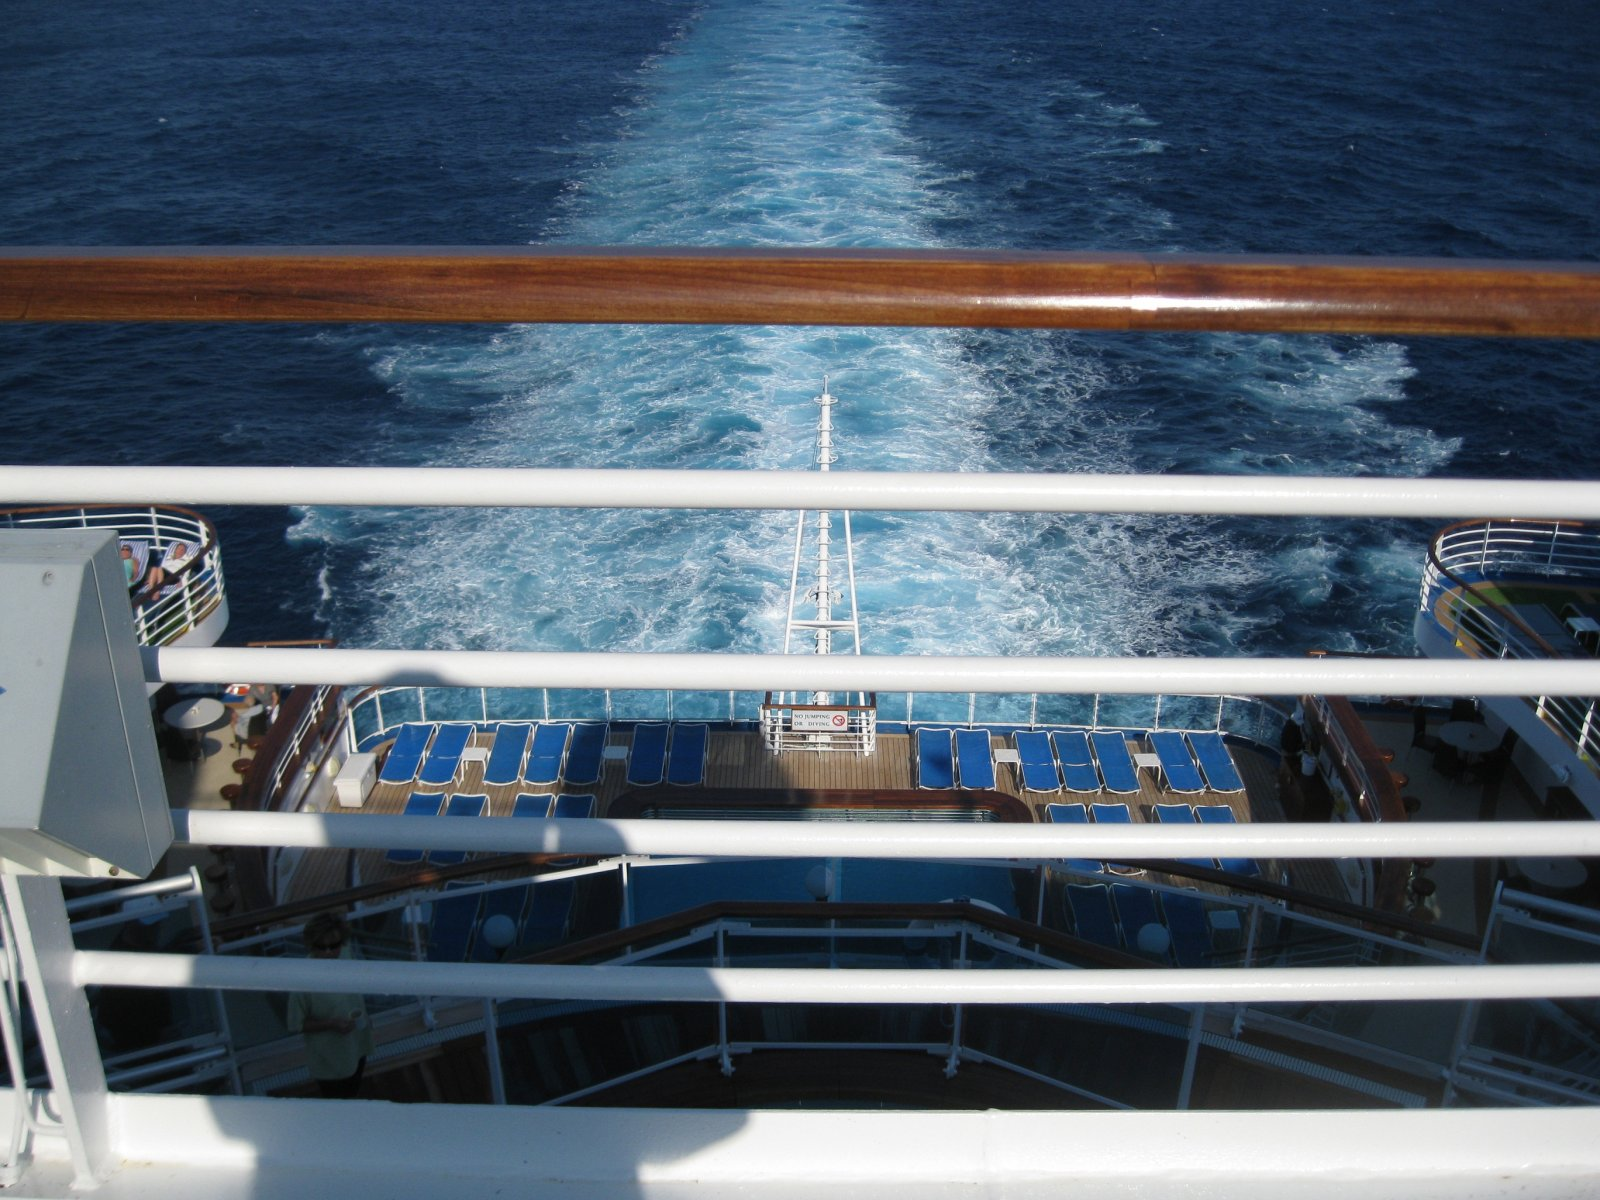 Click image for larger version  Name:2012 Princess Cruise 846RS.jpg Views:56 Size:322.8 KB ID:159263